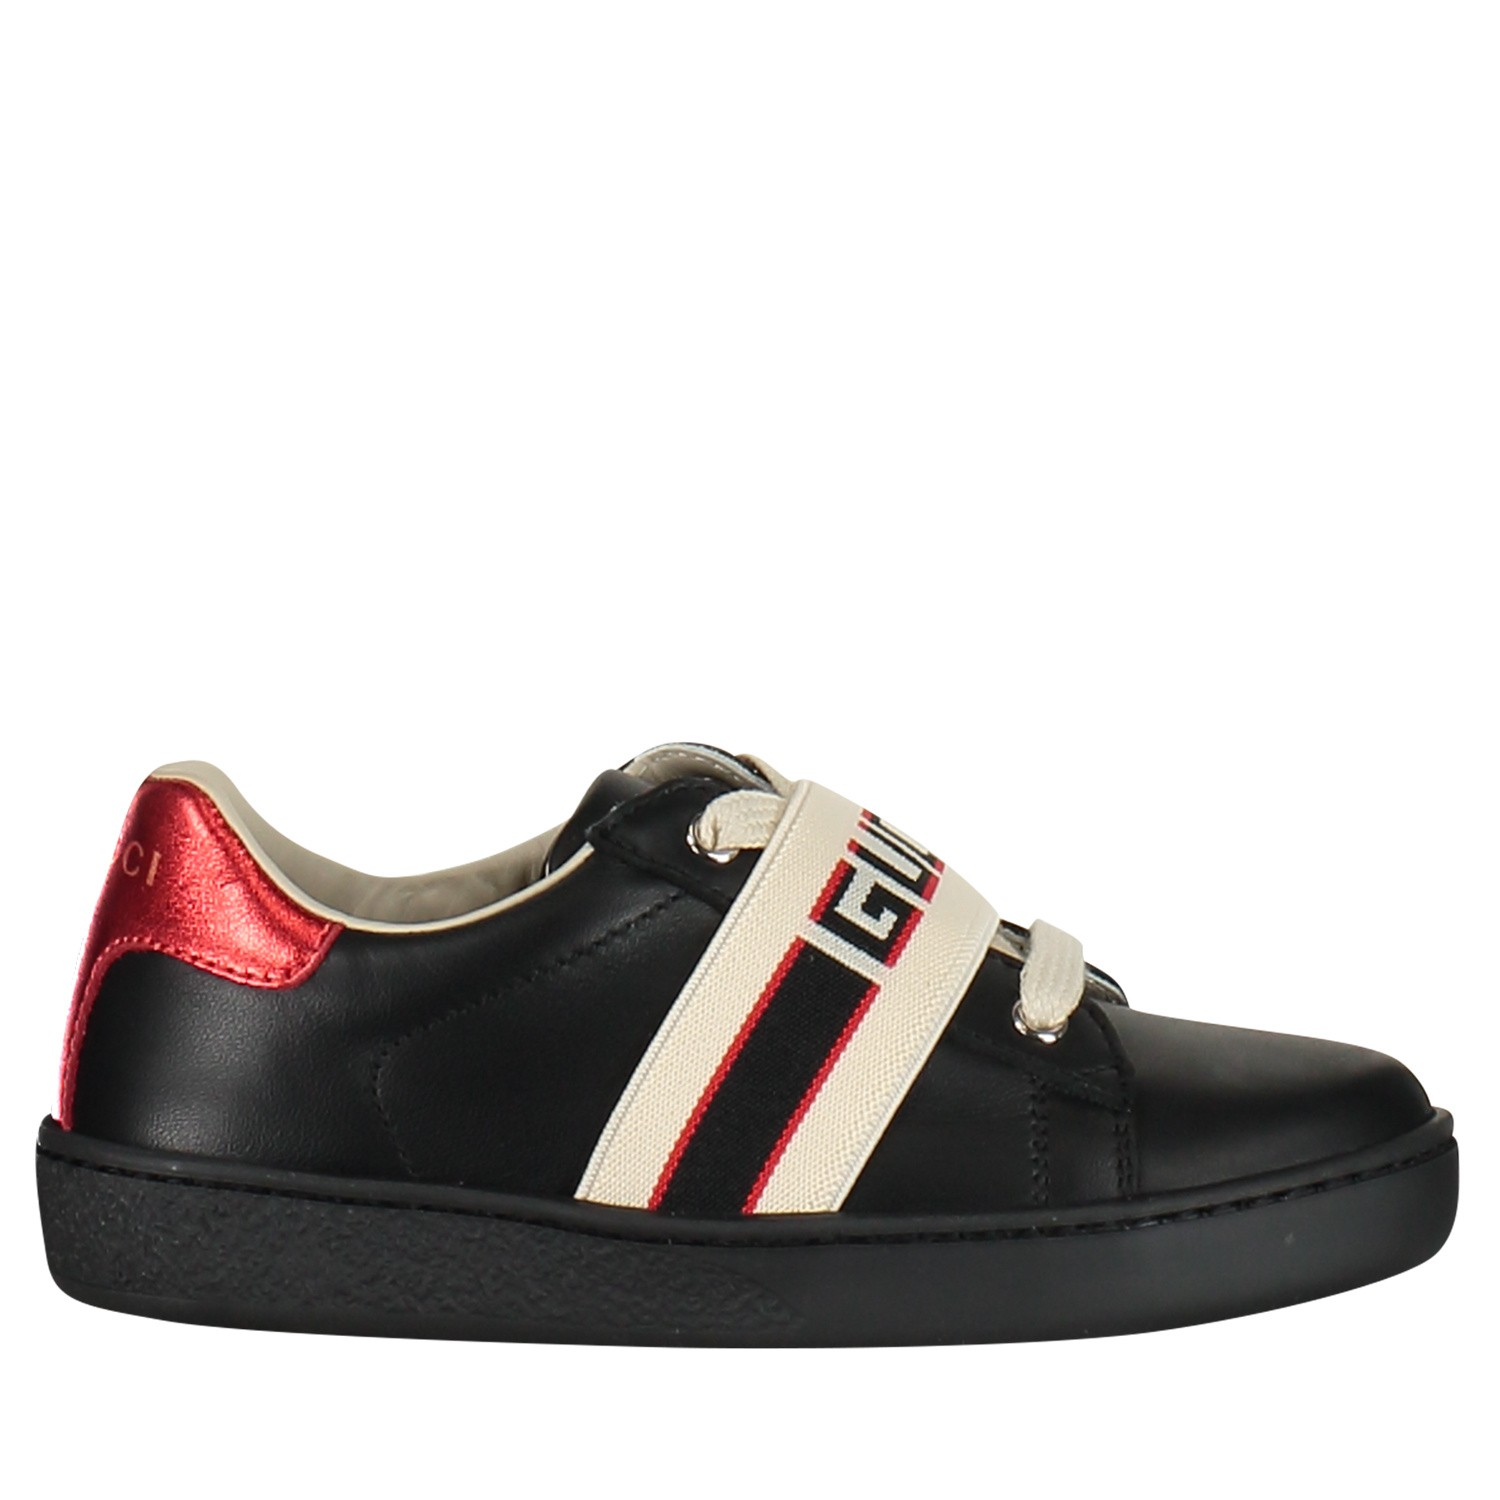 Picture of Gucci 552940 kids sneakers black